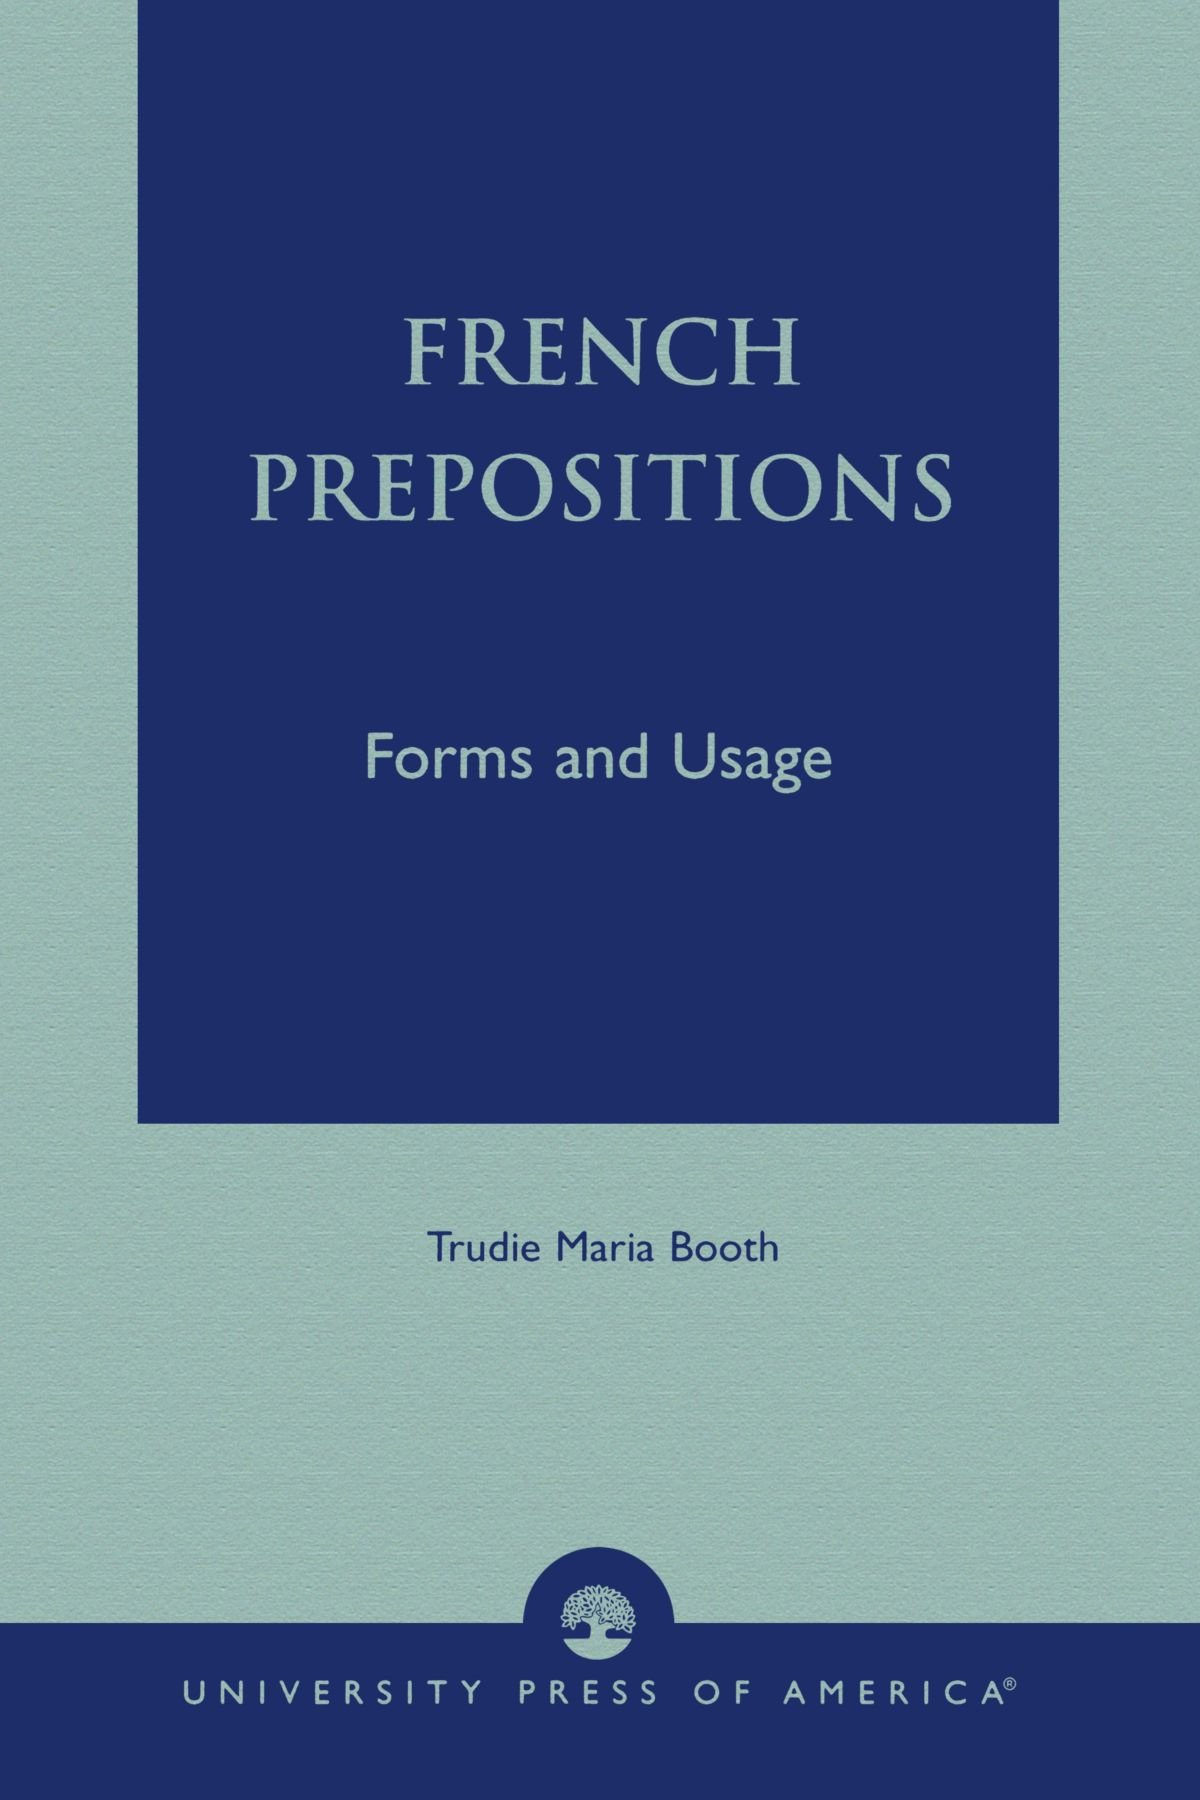 French Prepositions: Forms and Usage by Brand: University Press of America